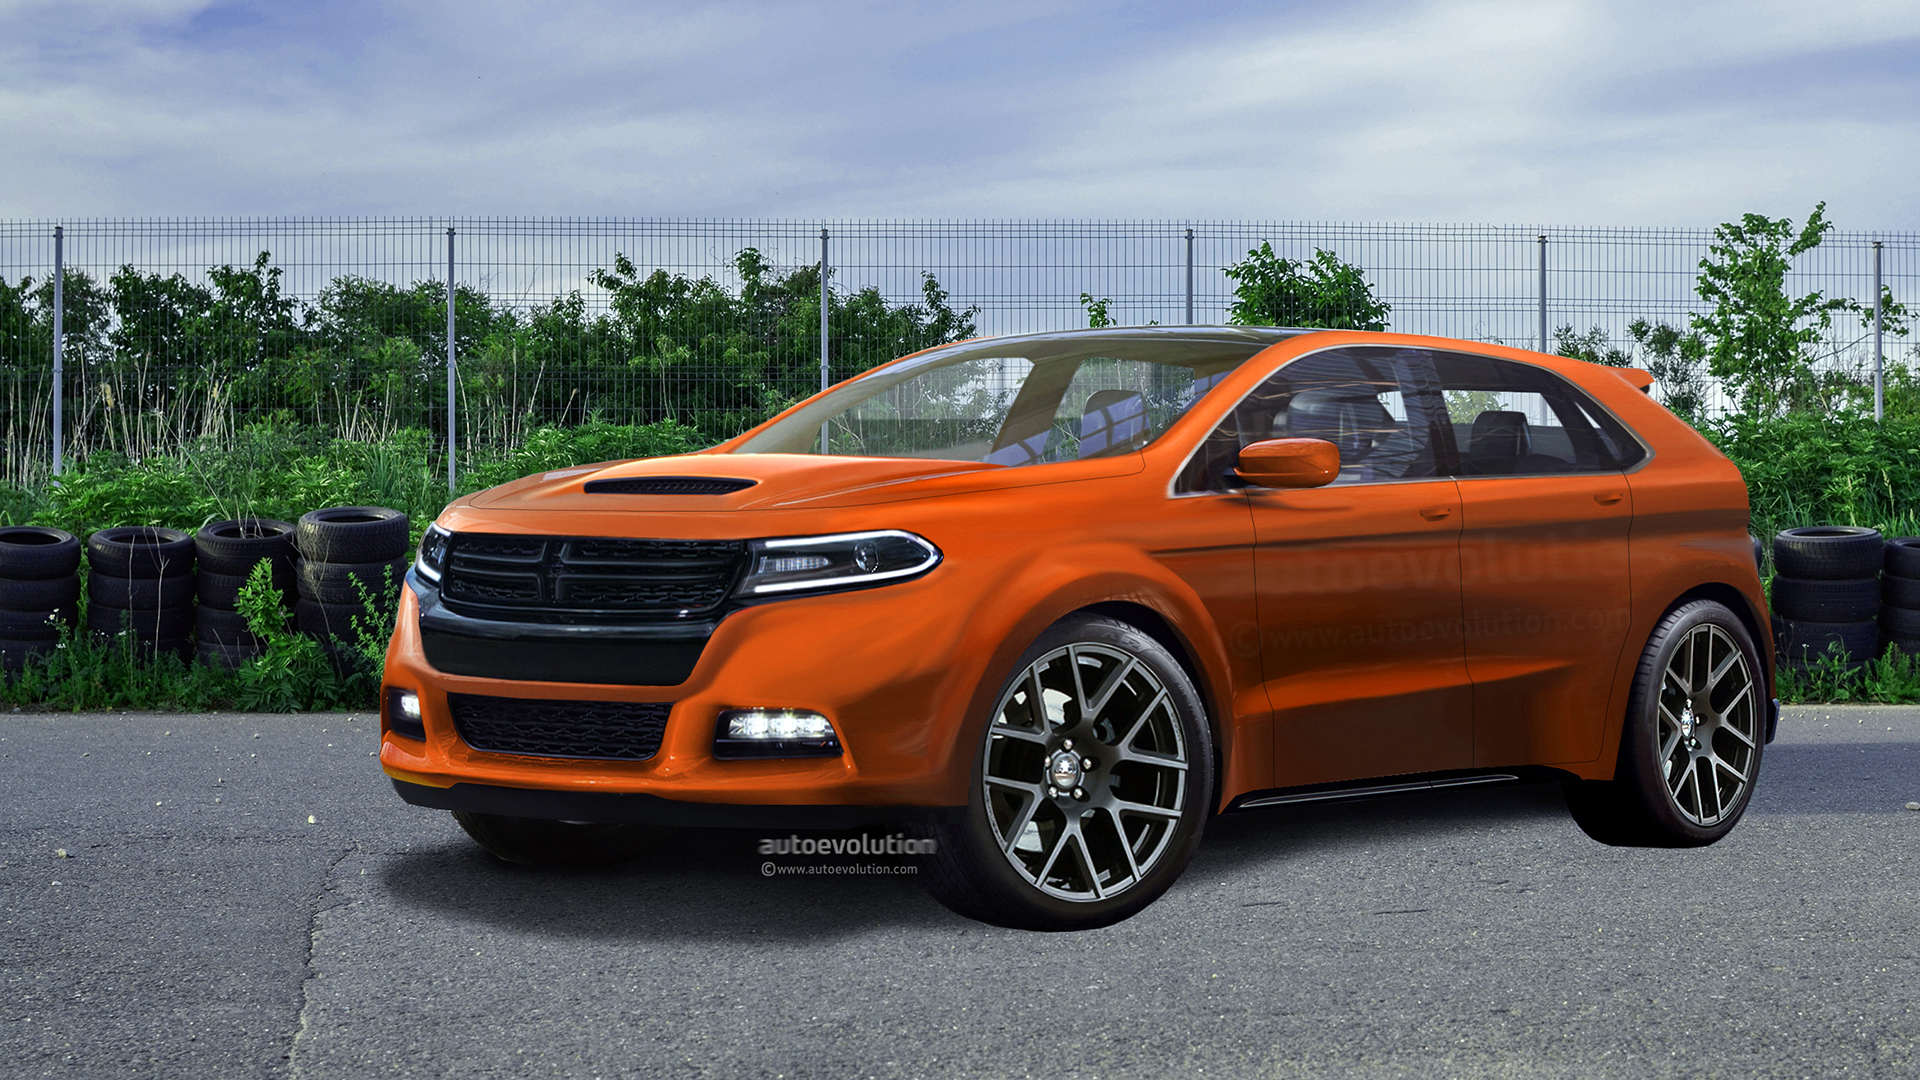 Could An Electric Dodge Charger Suv Challenge The Ford Mustang Mach E Autoevolution